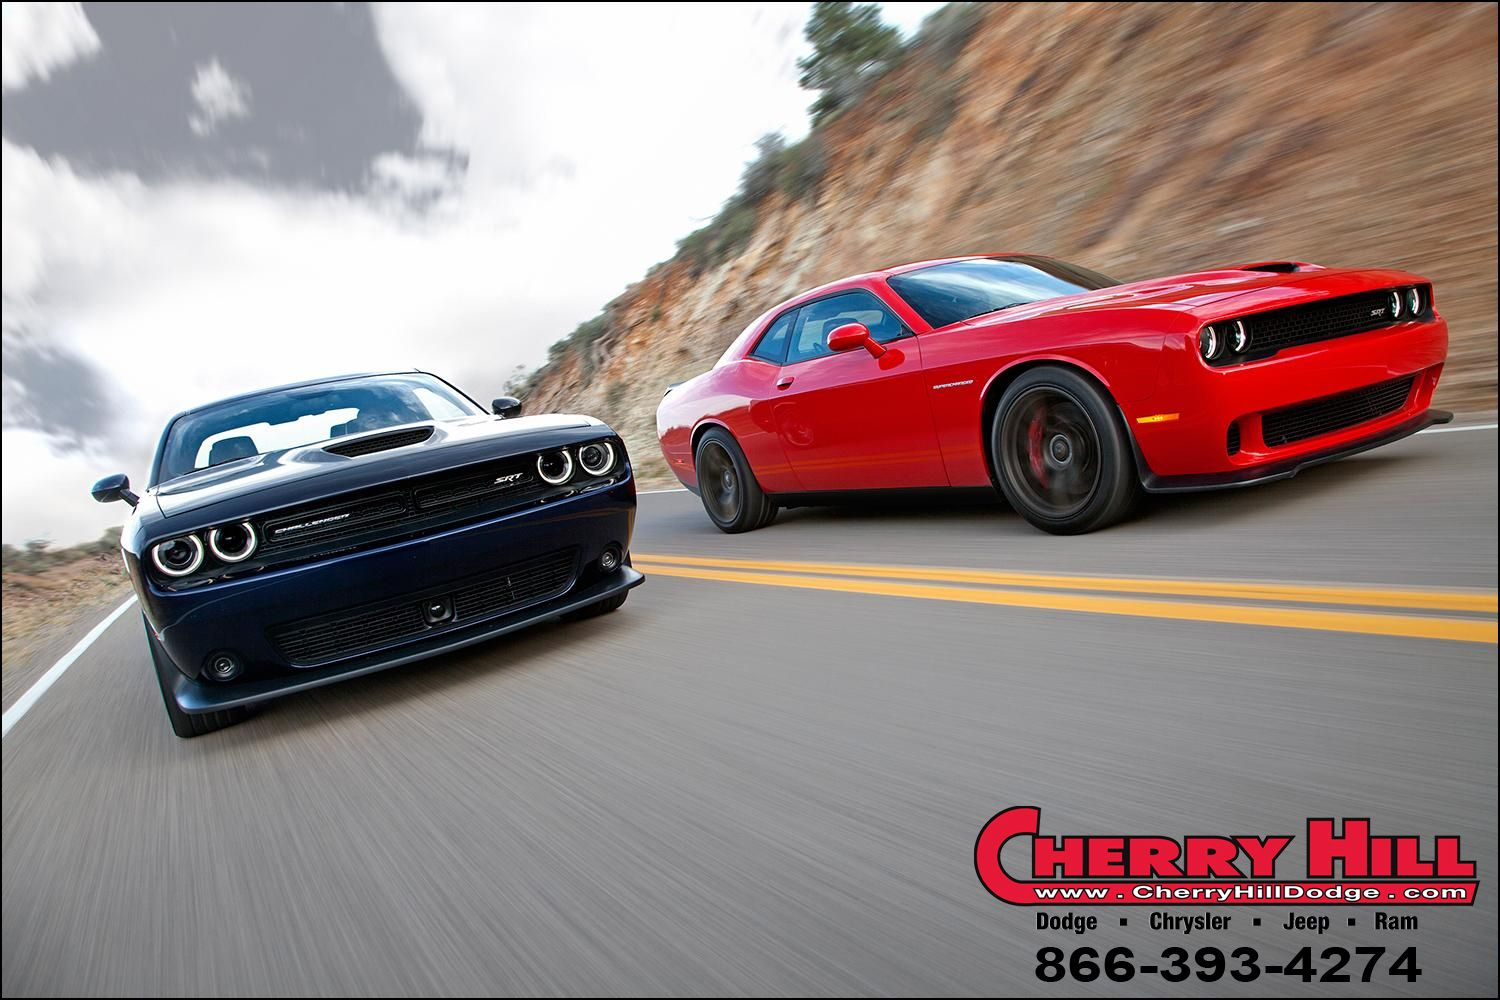 2015 dodge challenger srt hellcat makes 707 hp join automobile magazine s executive editor todd lassa